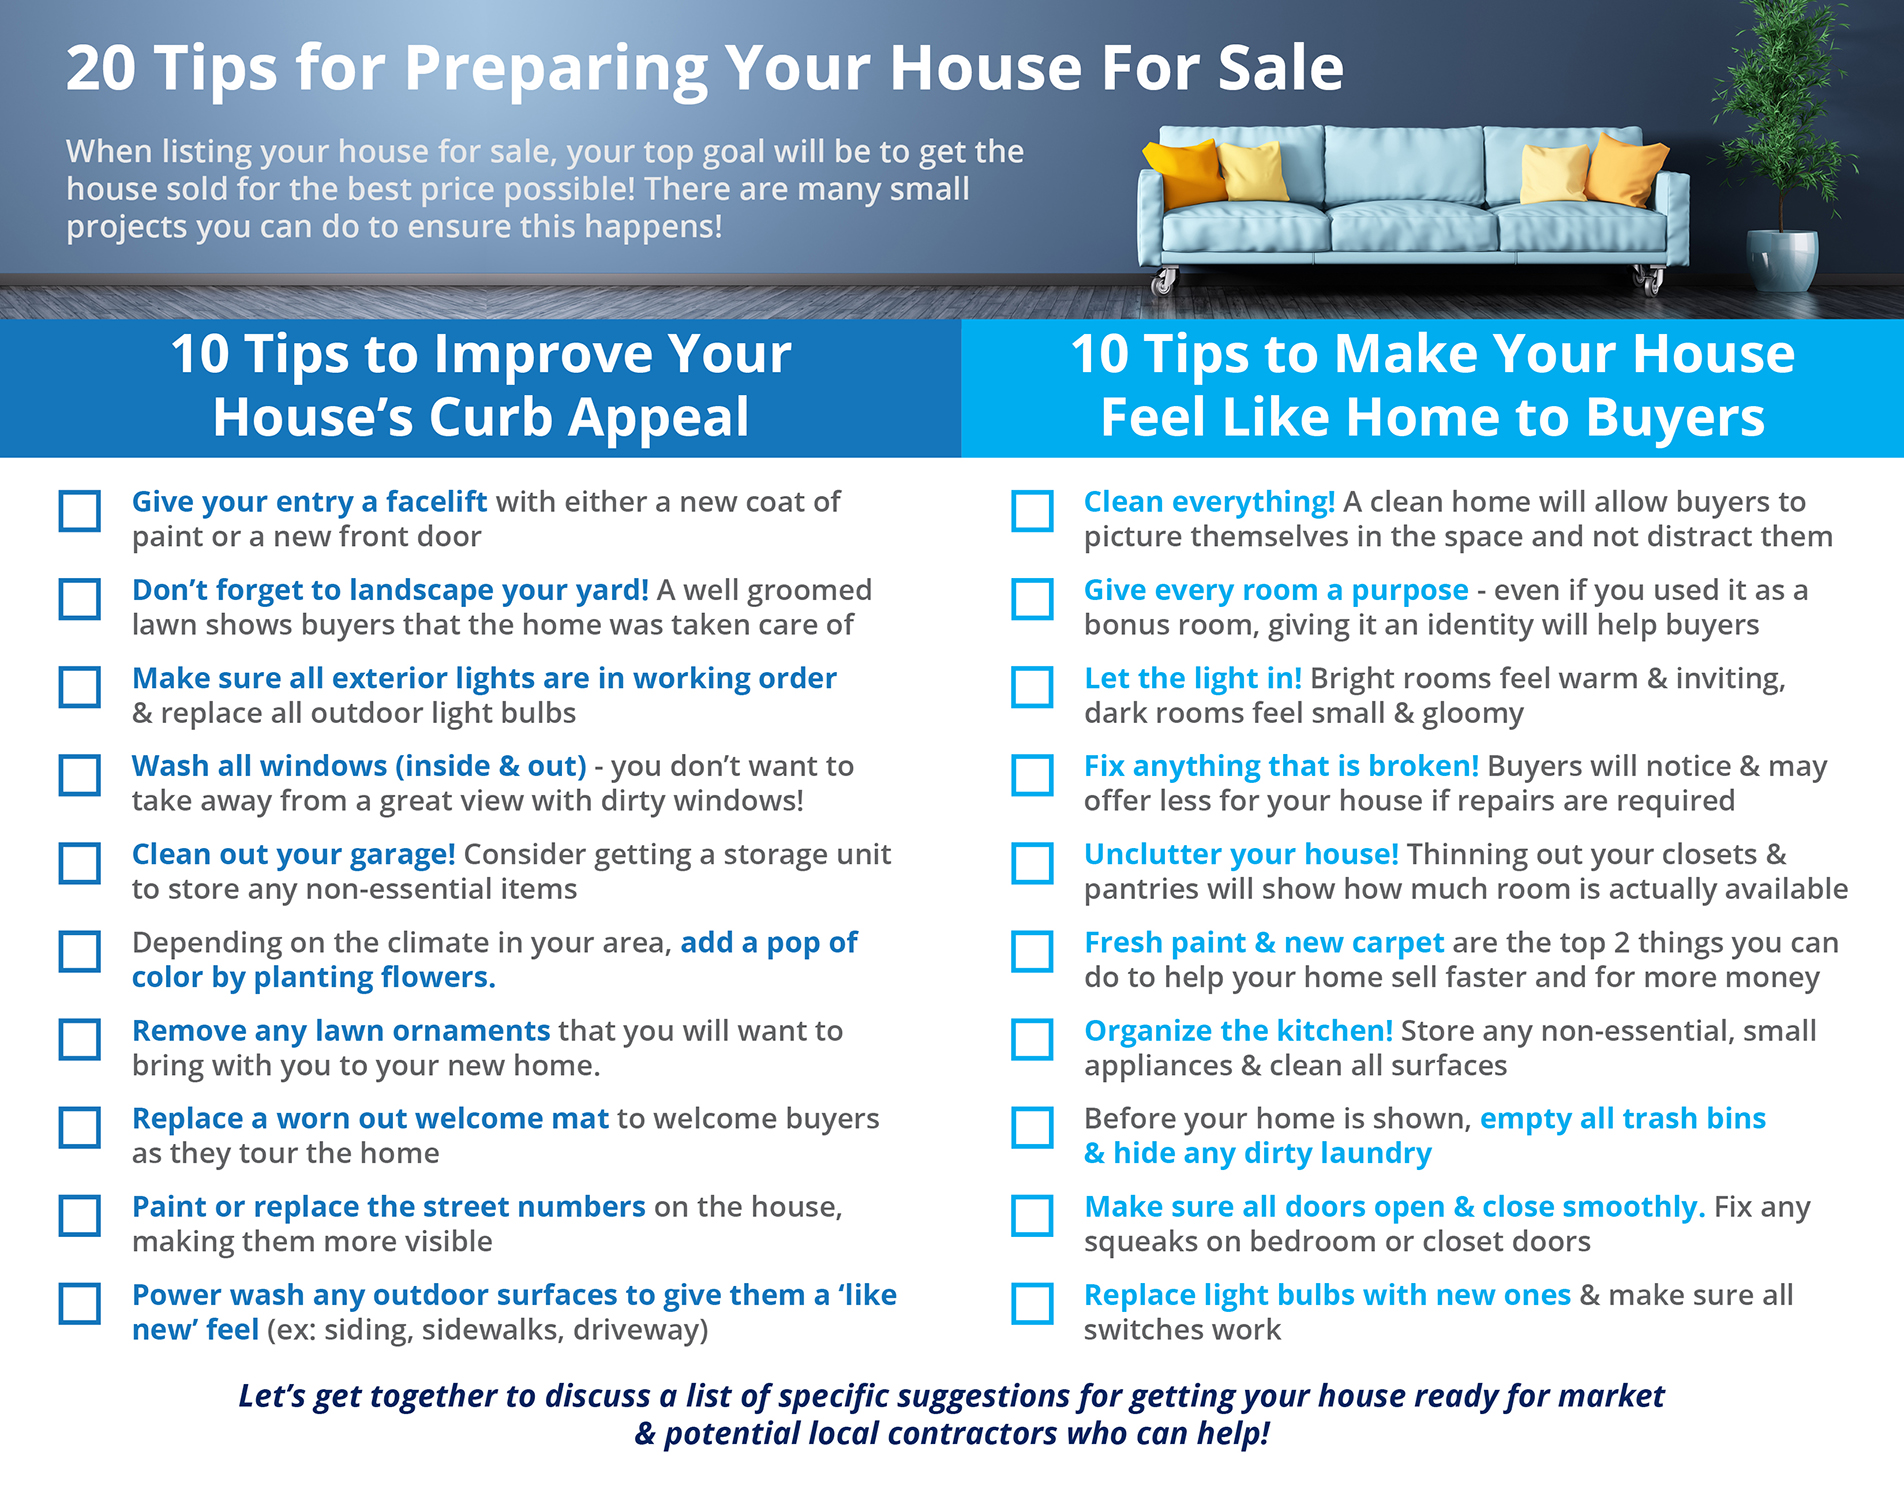 20 Tips For Preparing Your House For Sale | Simplifying The Market